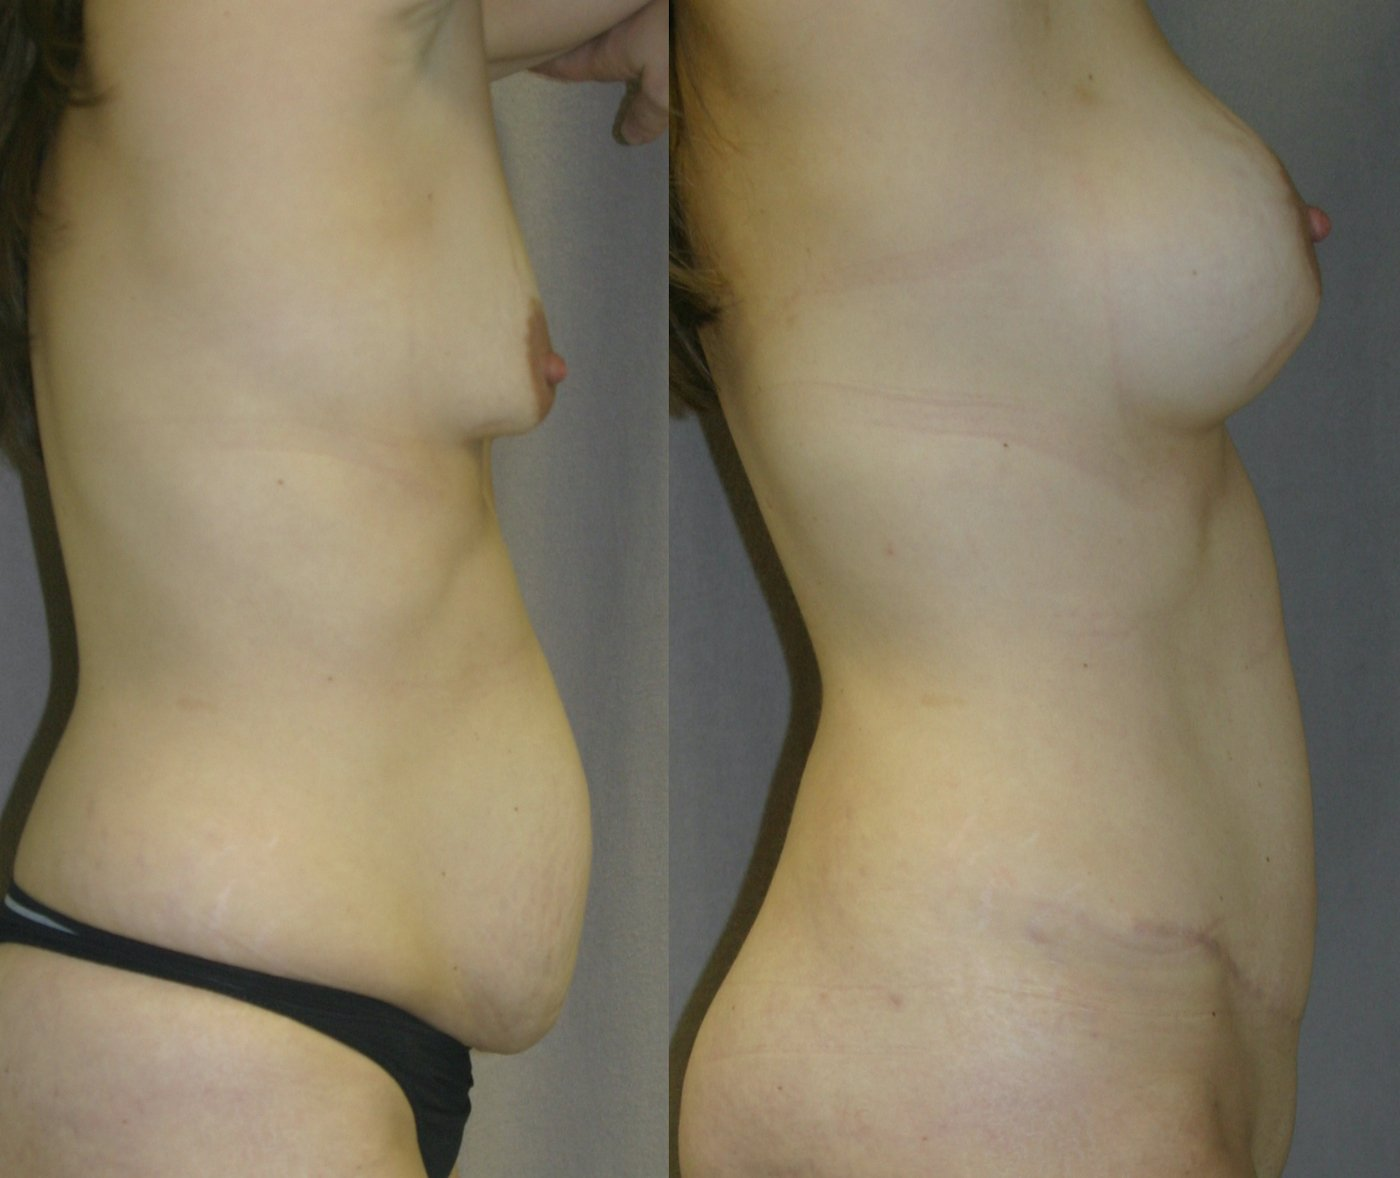 36-year-old Mommy Makeover, Breast Augmentation and Tummy Tuck 6 months after surgery, side view